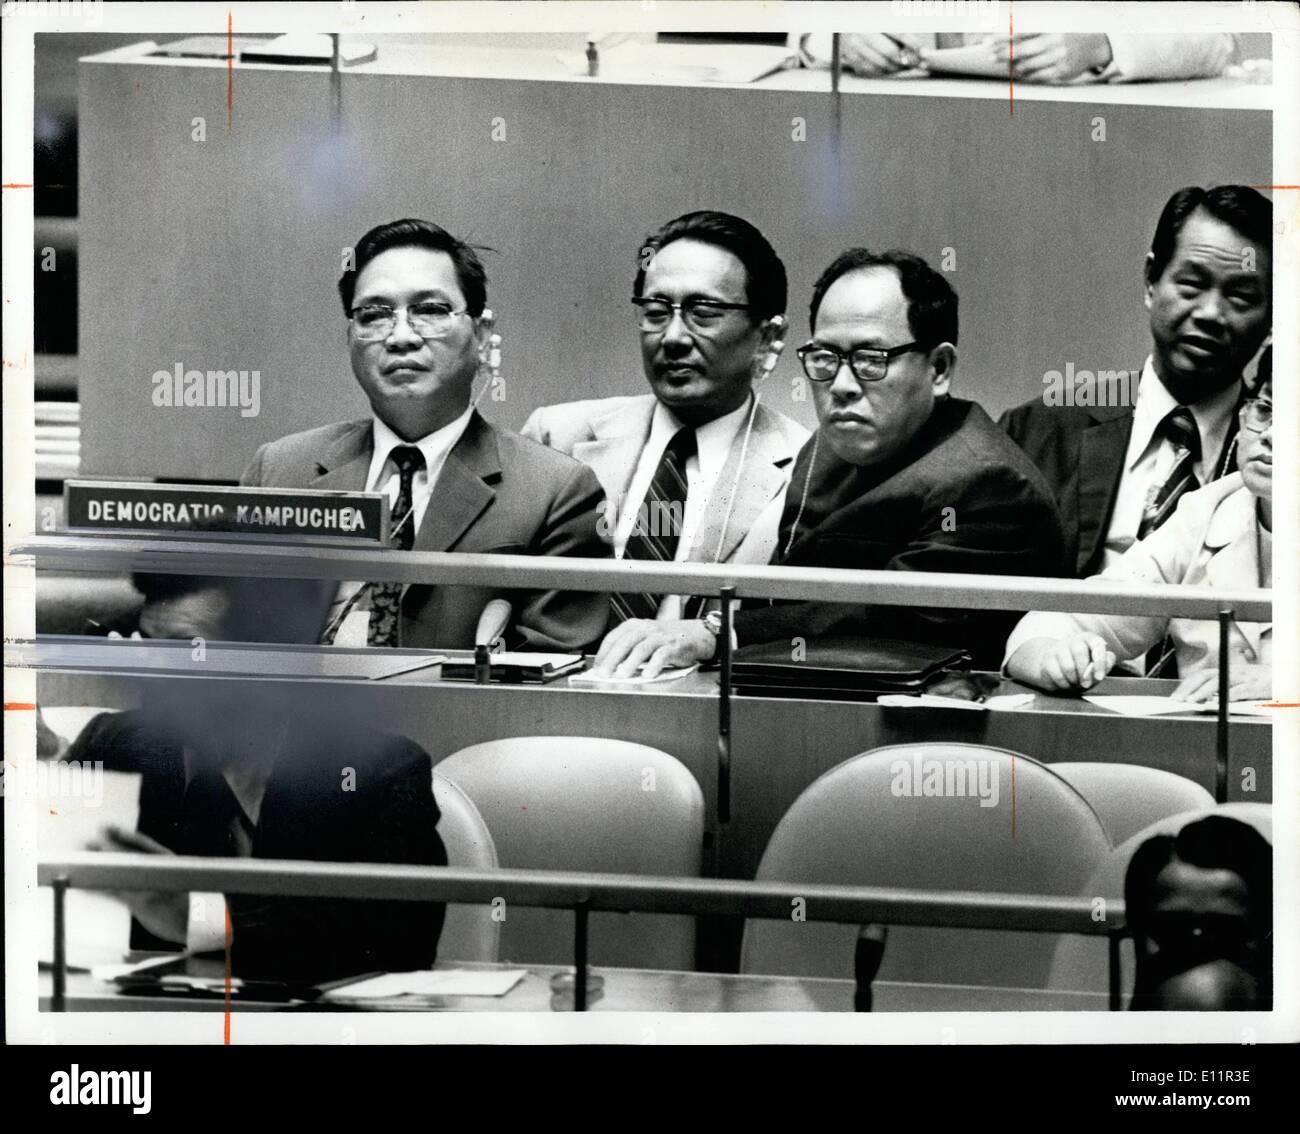 Sep. 09, 1979 - Democratic Kampuchea Pol Pot faction delegation un General Assembly. Ieng Sary right - Stock Image